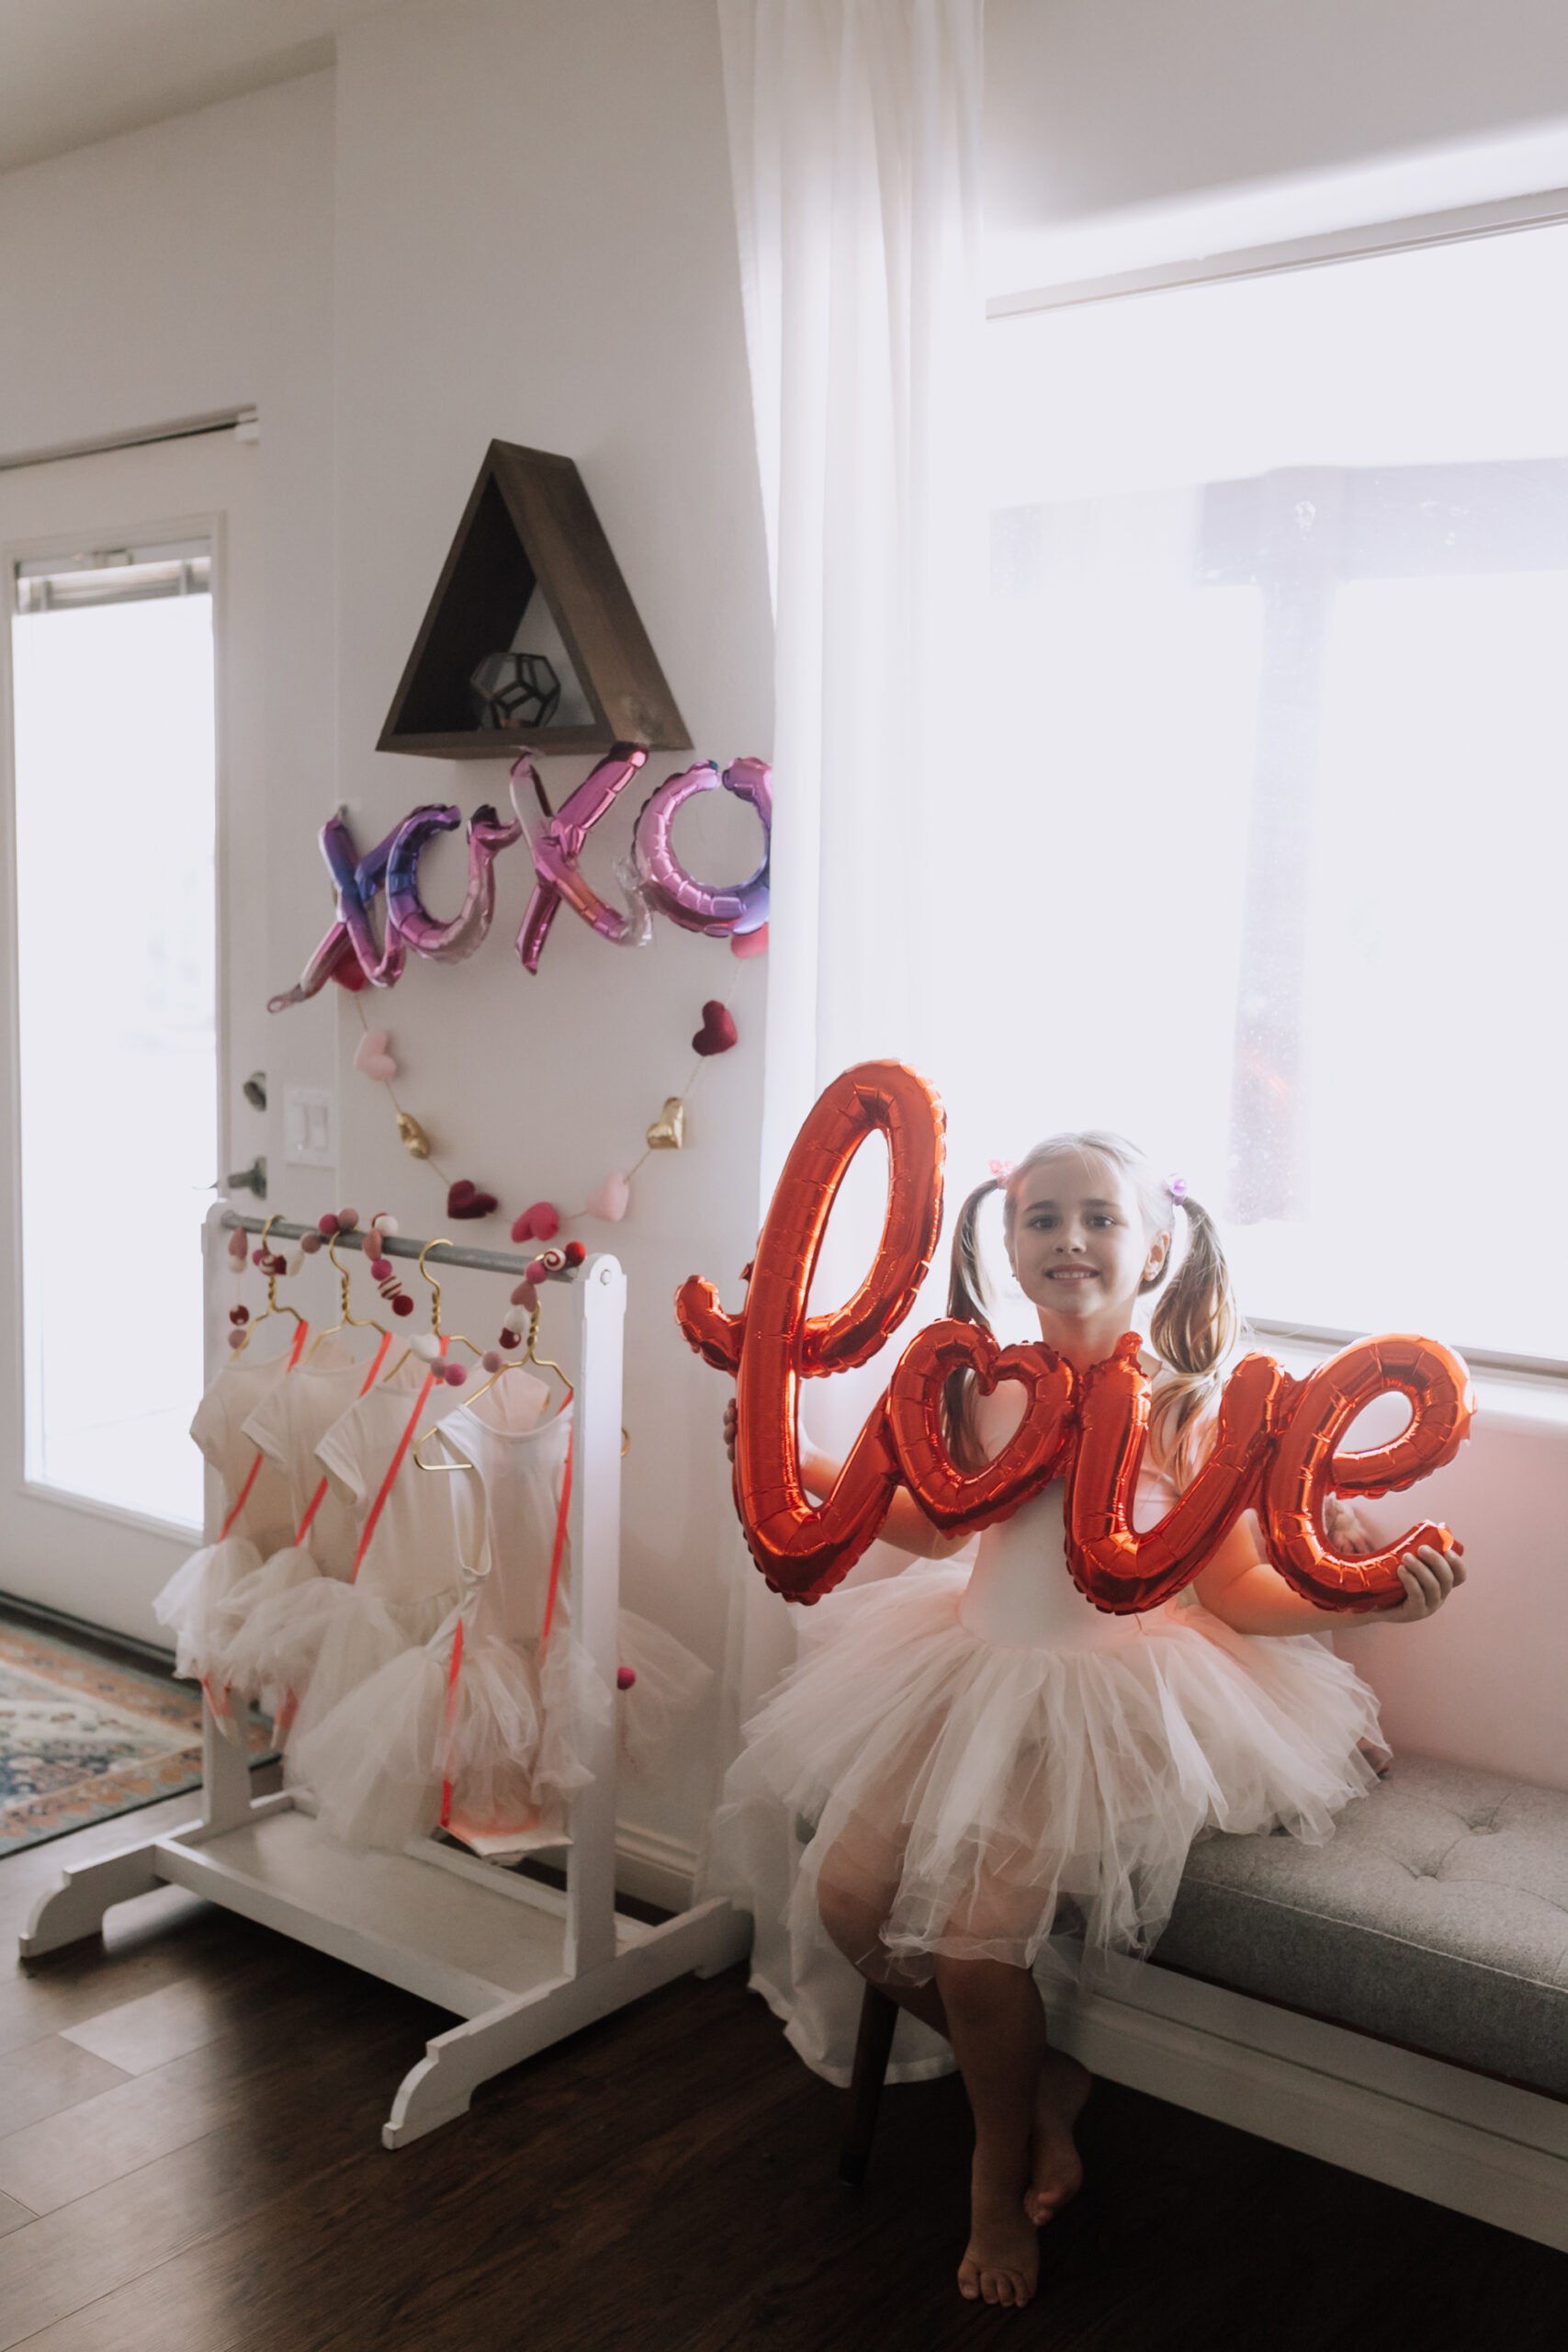 showing love for her fellow galentines with tutus for dress up! #thelovedesignedlife #galentinesday #tutucute